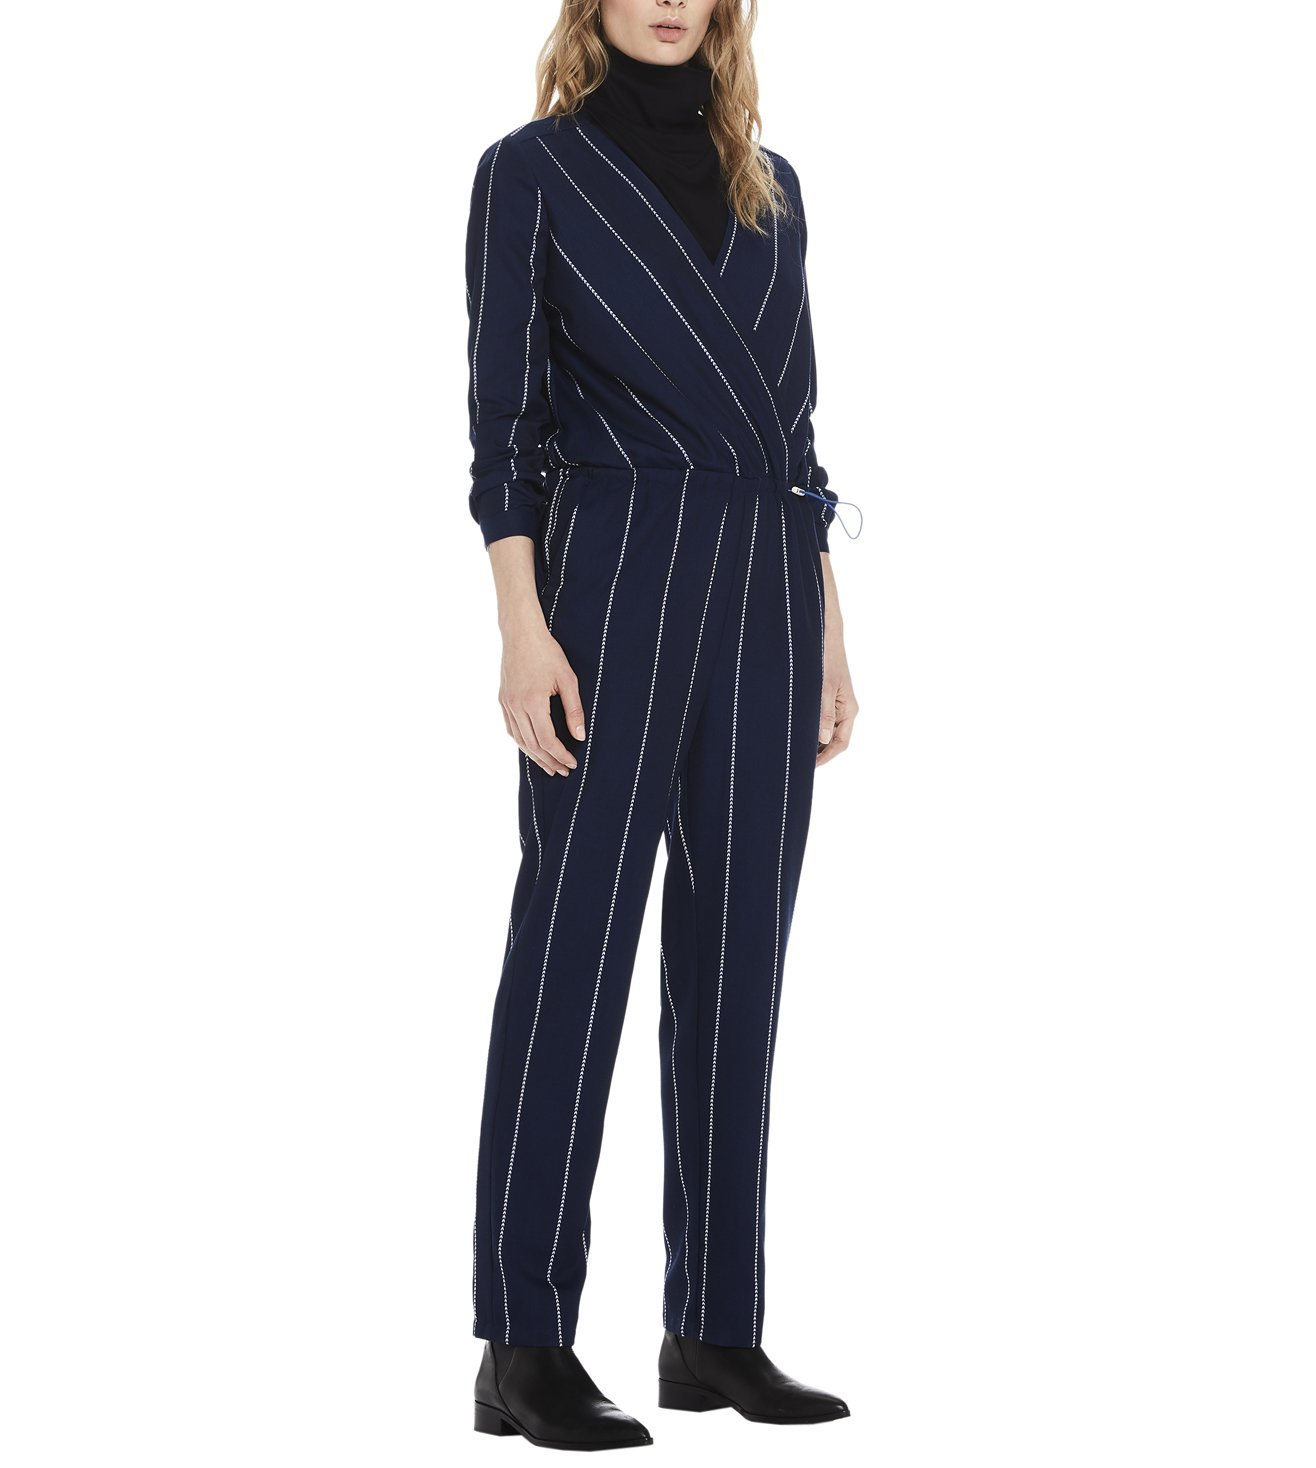 SCOTCH & SODA BLUE ALL IN 1 WRAP-OVER BODY STRIPED JUMPSUIT